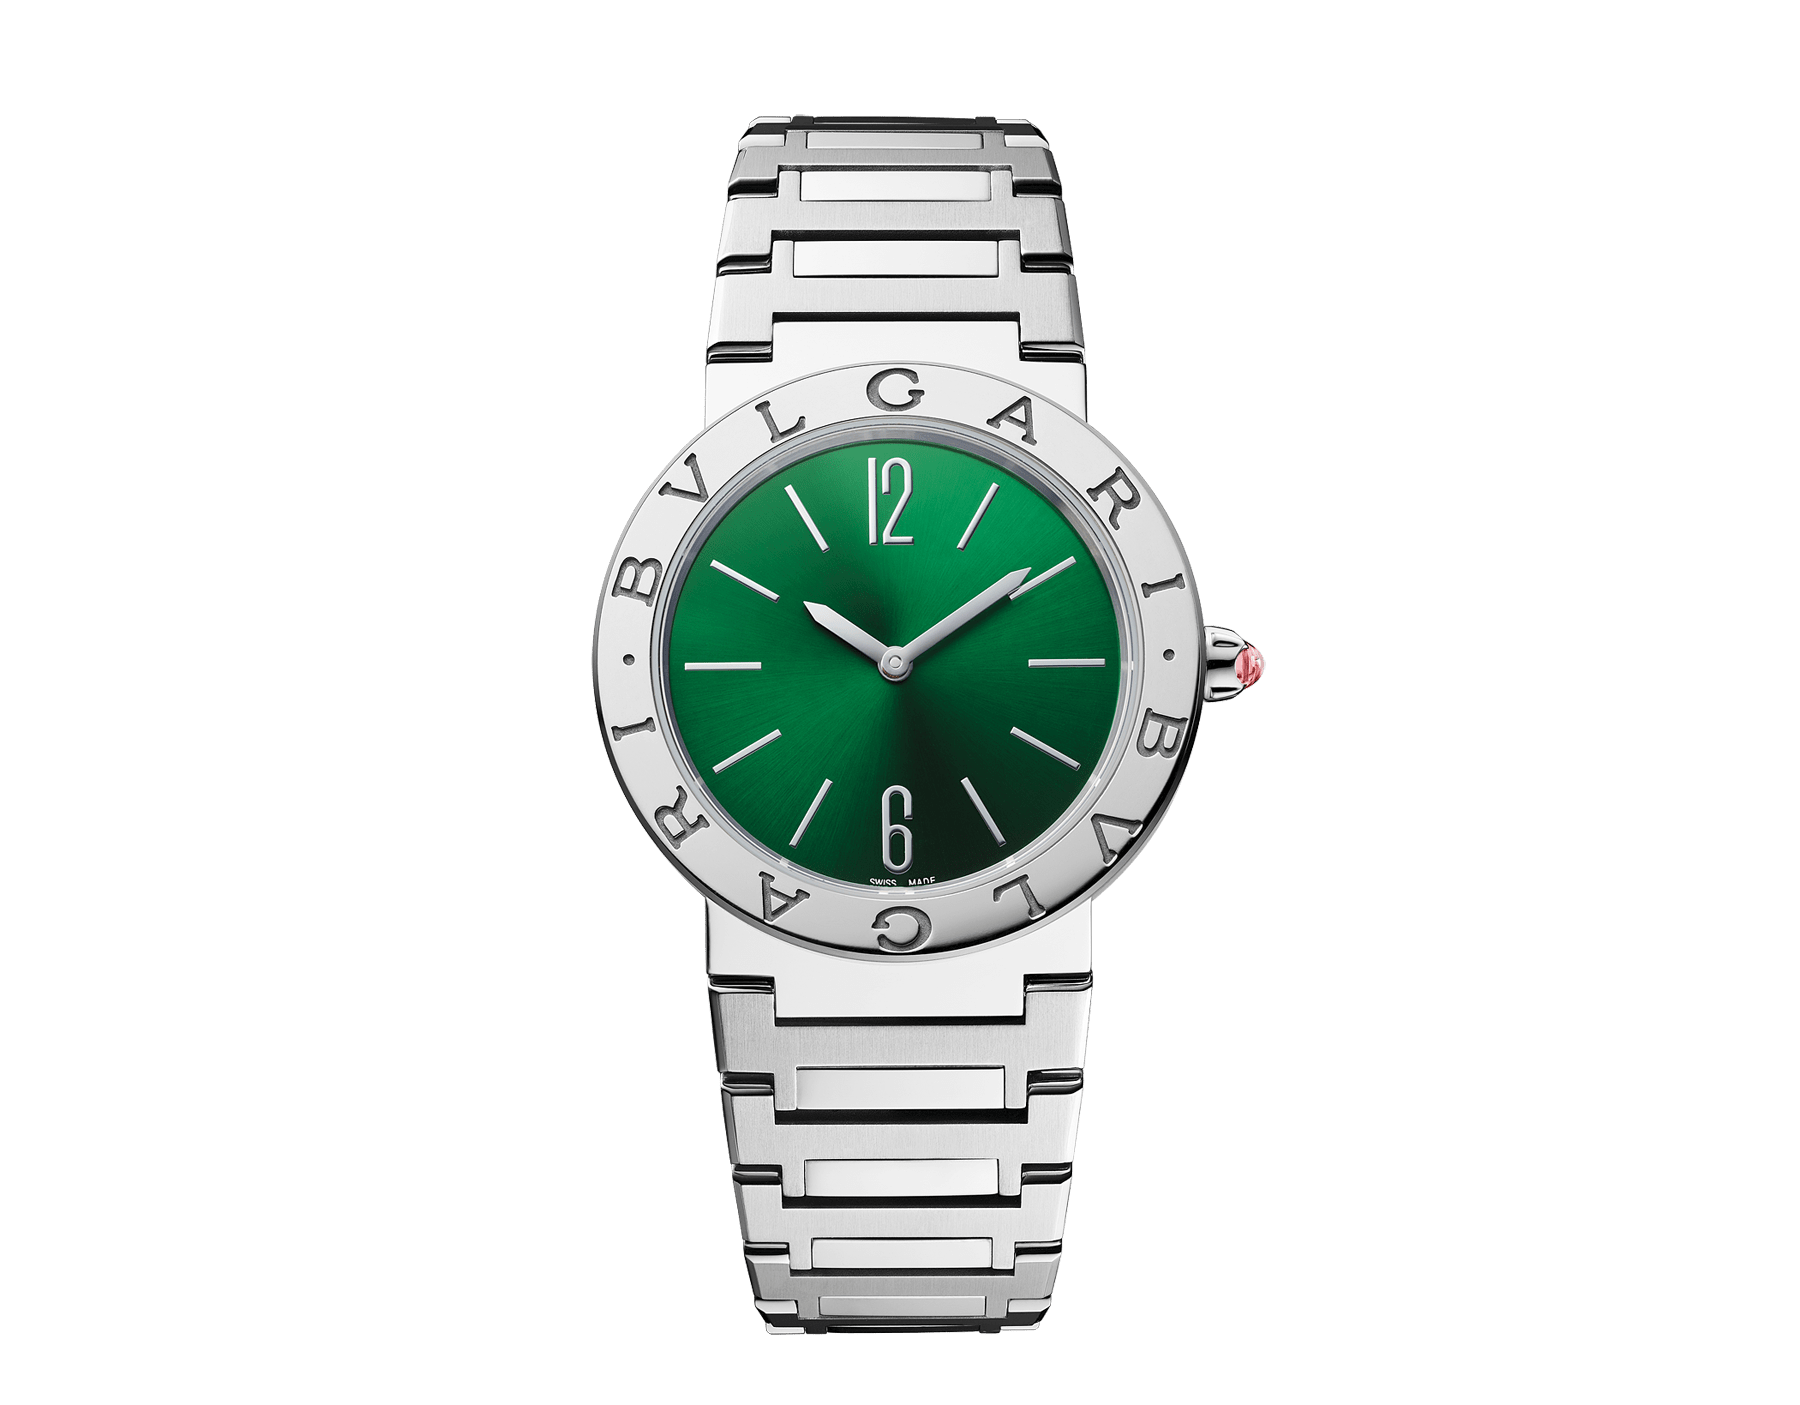 BVLGARI BVLGARI LADY watch with stainless steel case, stainless steel bracelet, stainless steel bezel engraved with double logo and green sun-brushed dial. 103066 image 1